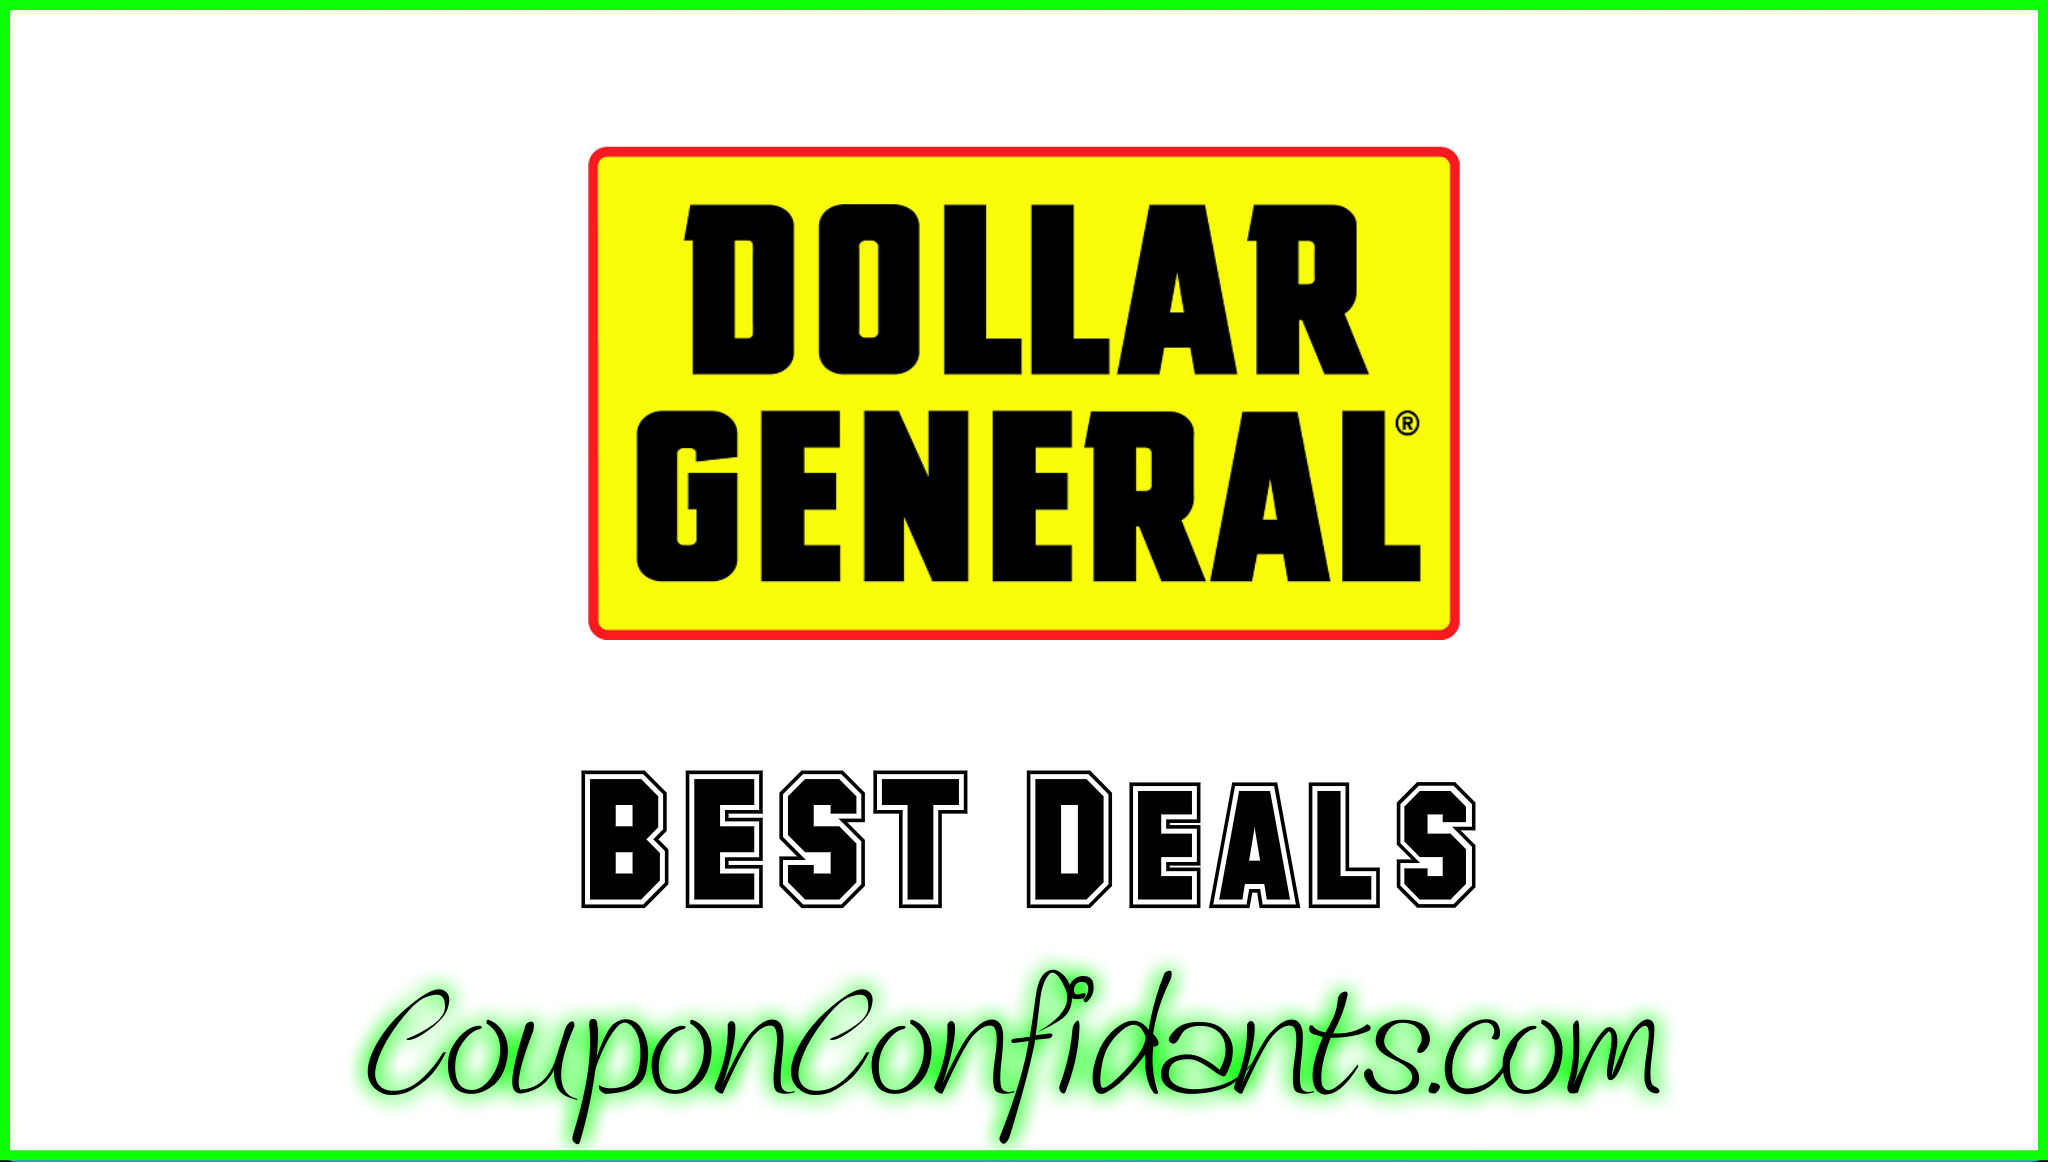 Dollar General - Nov 01 - Nov 03 3 DAY SALE!~